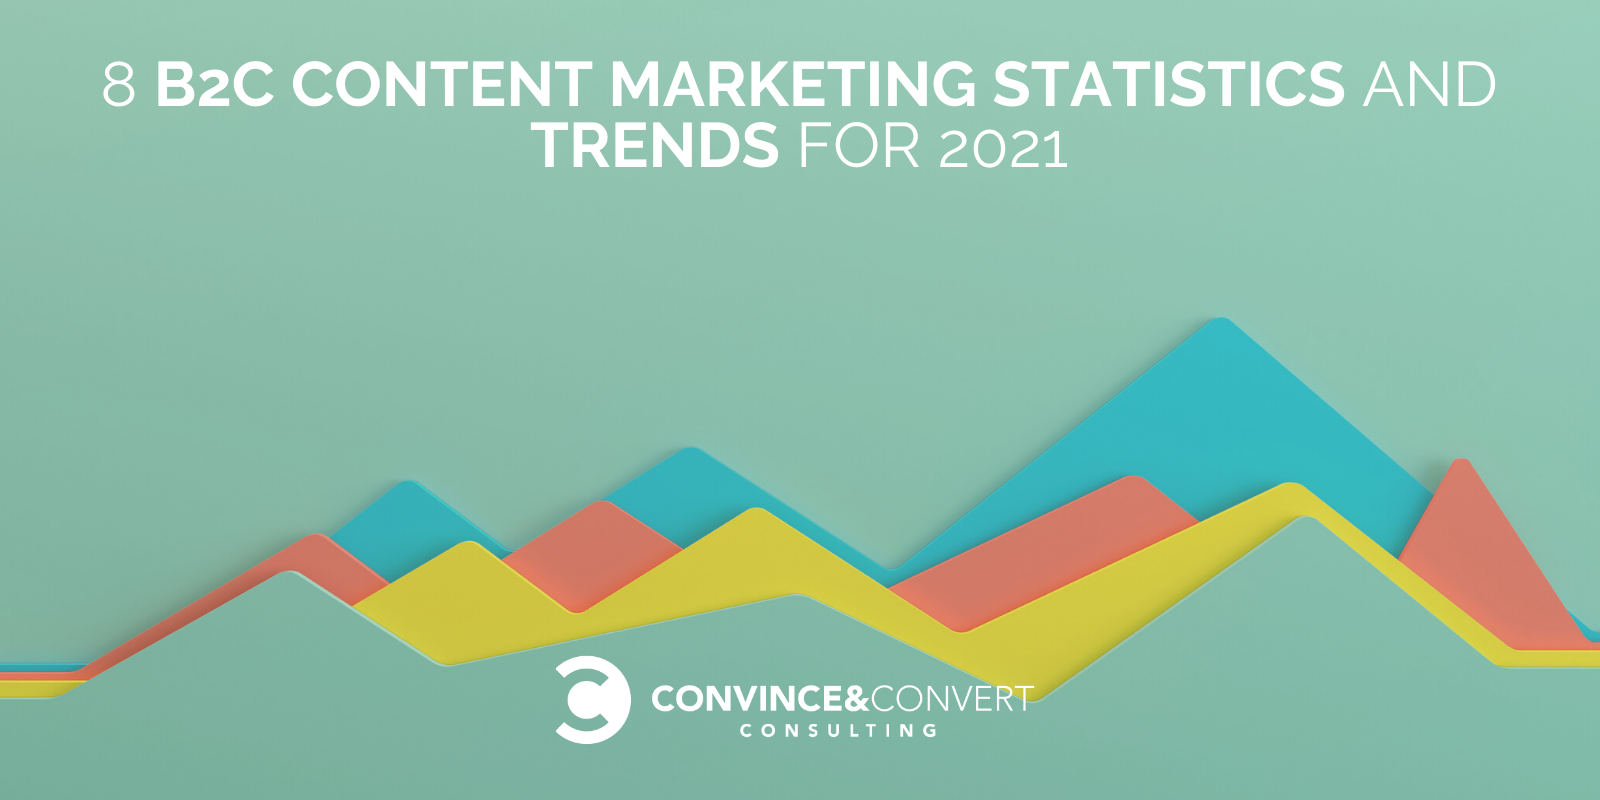 8 B2C Content Marketing Statistics and Trends for 2021